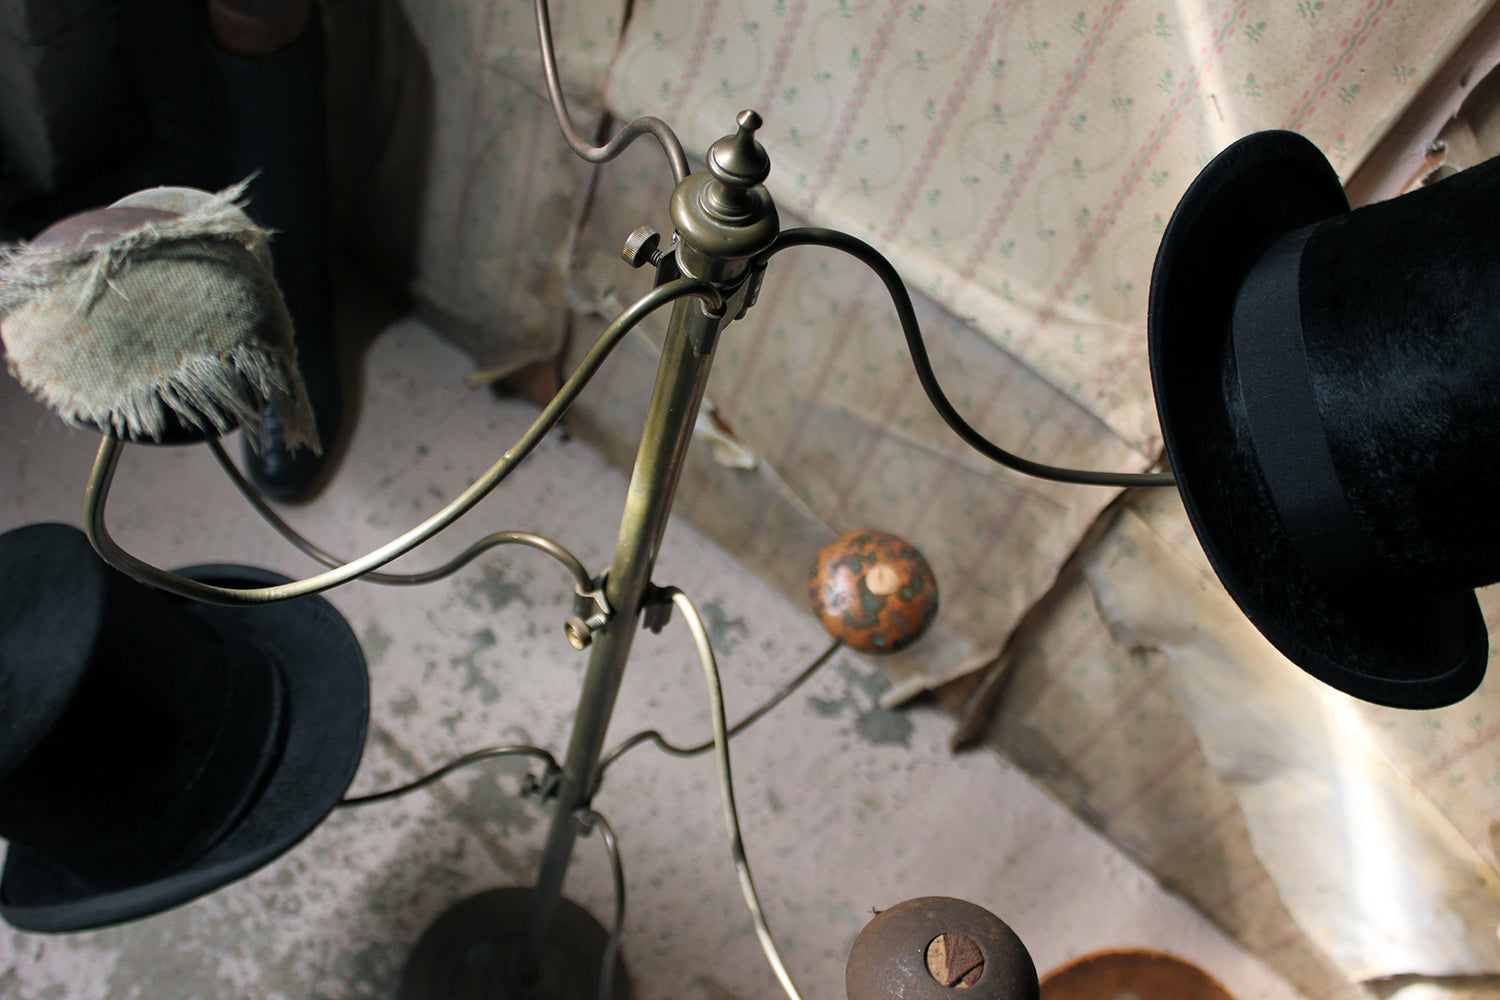 An Early 20thC Brass Millinery Hat Stand; Annie Gold; French Milliner; Spitalfields, London